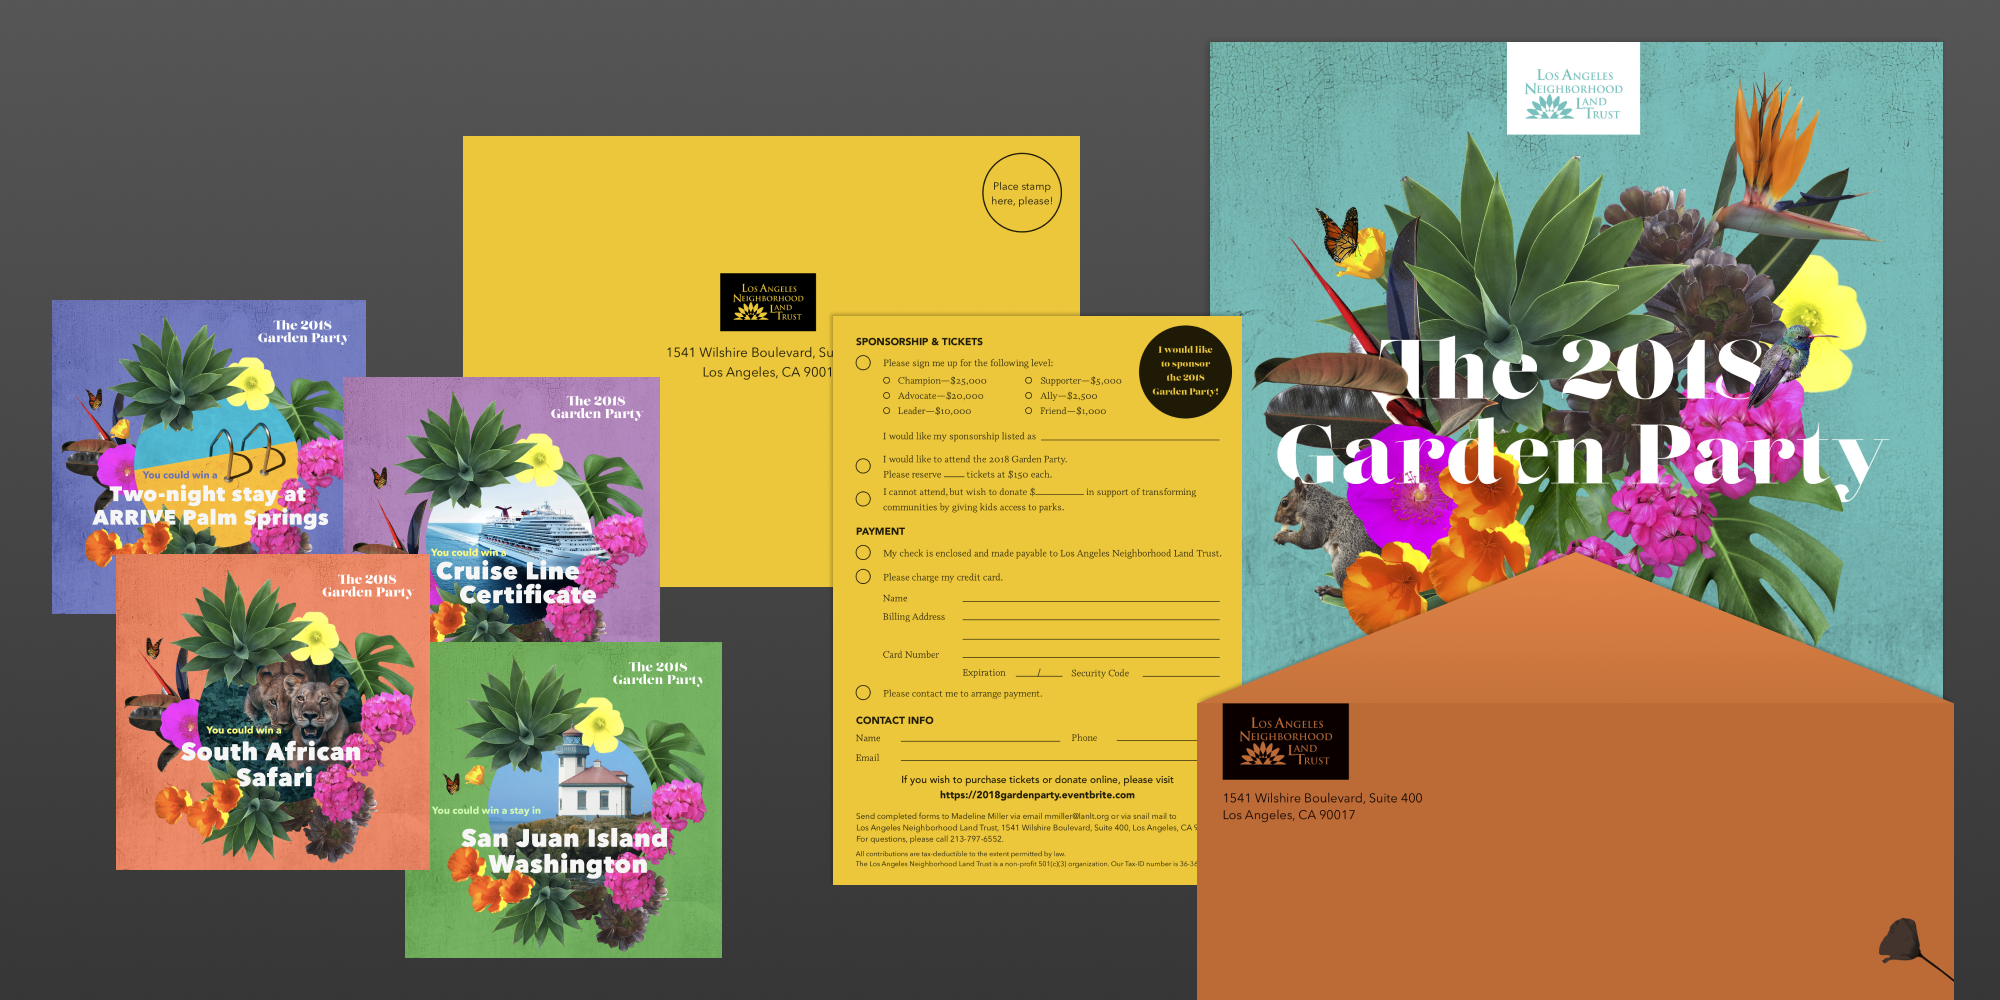 LA Neighborhood Land Trust 2018 Garden Party invitation and envelopes